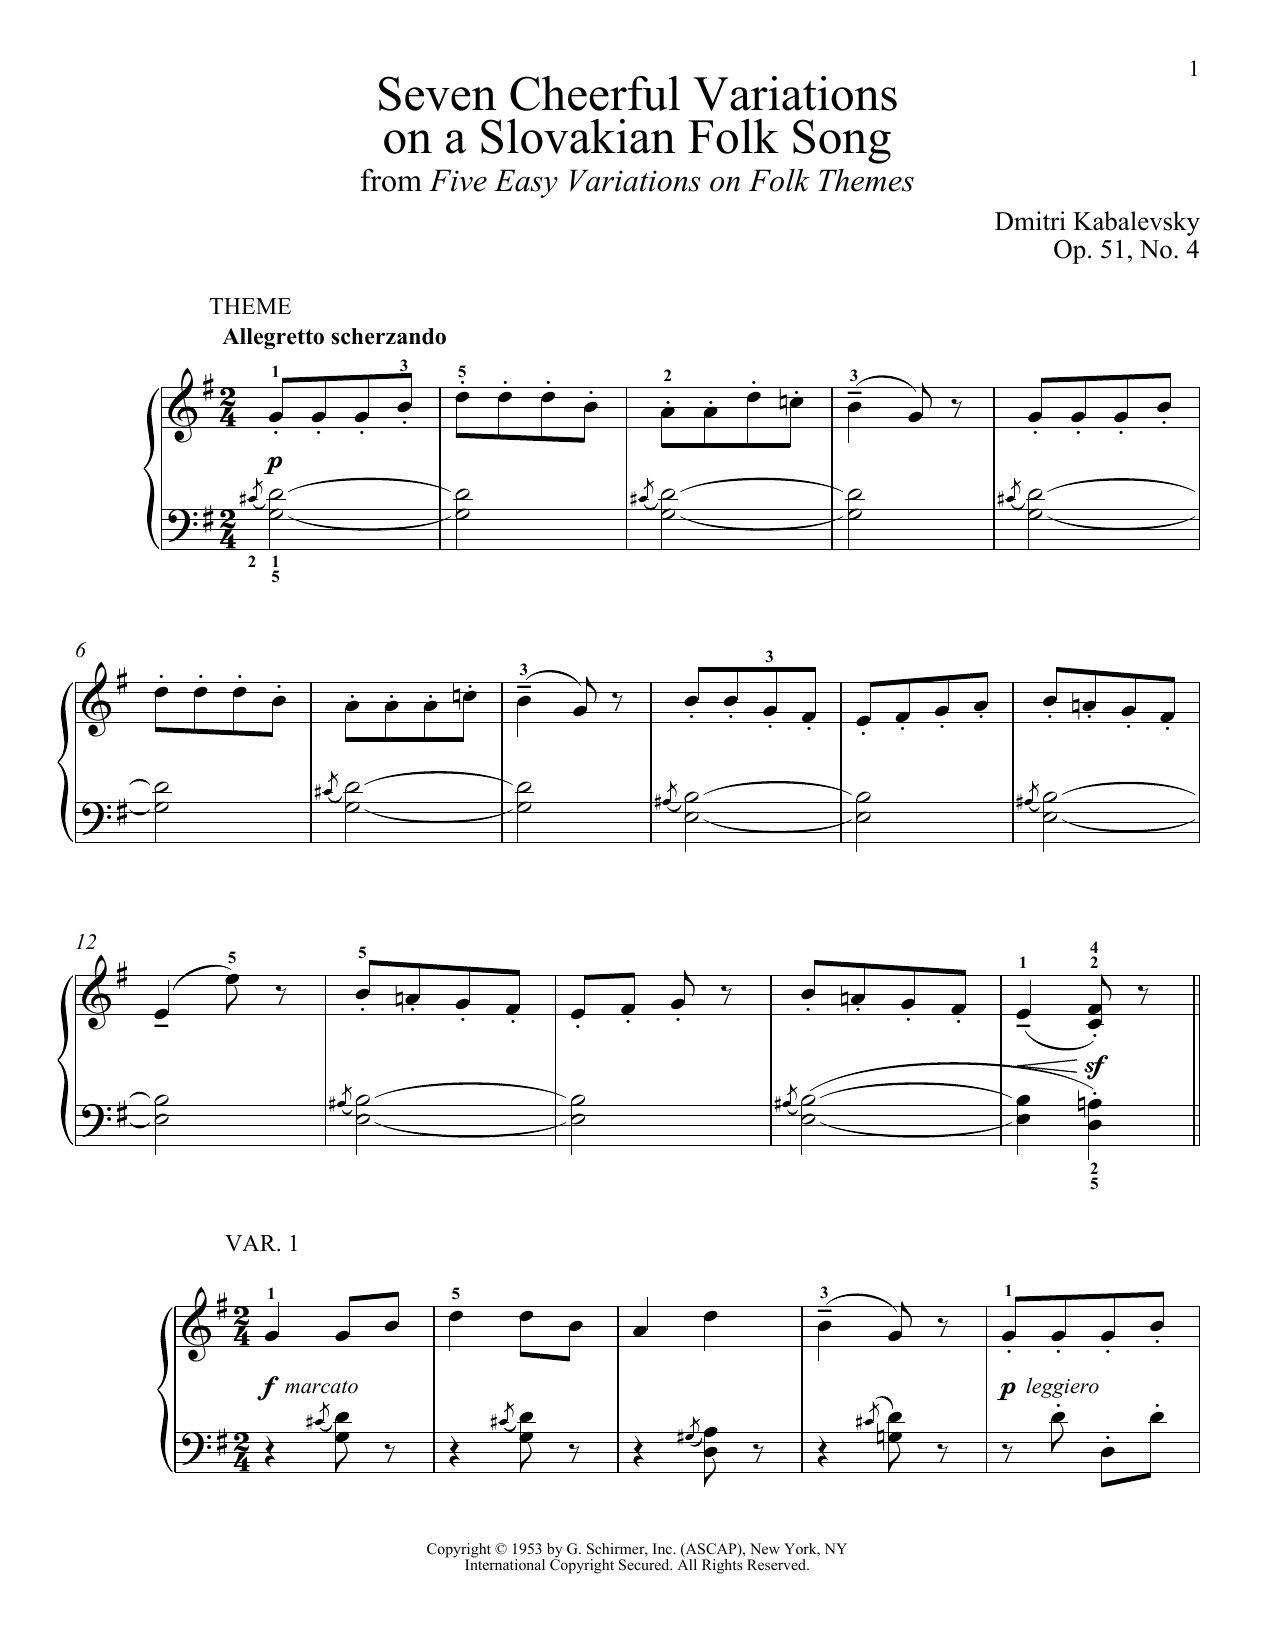 Download Dmitri Kabalevsky 'Seven Cheerful Variations On A Slovakian Folk Song, Op. 51, No. 4' Digital Sheet Music Notes & Chords and start playing in minutes